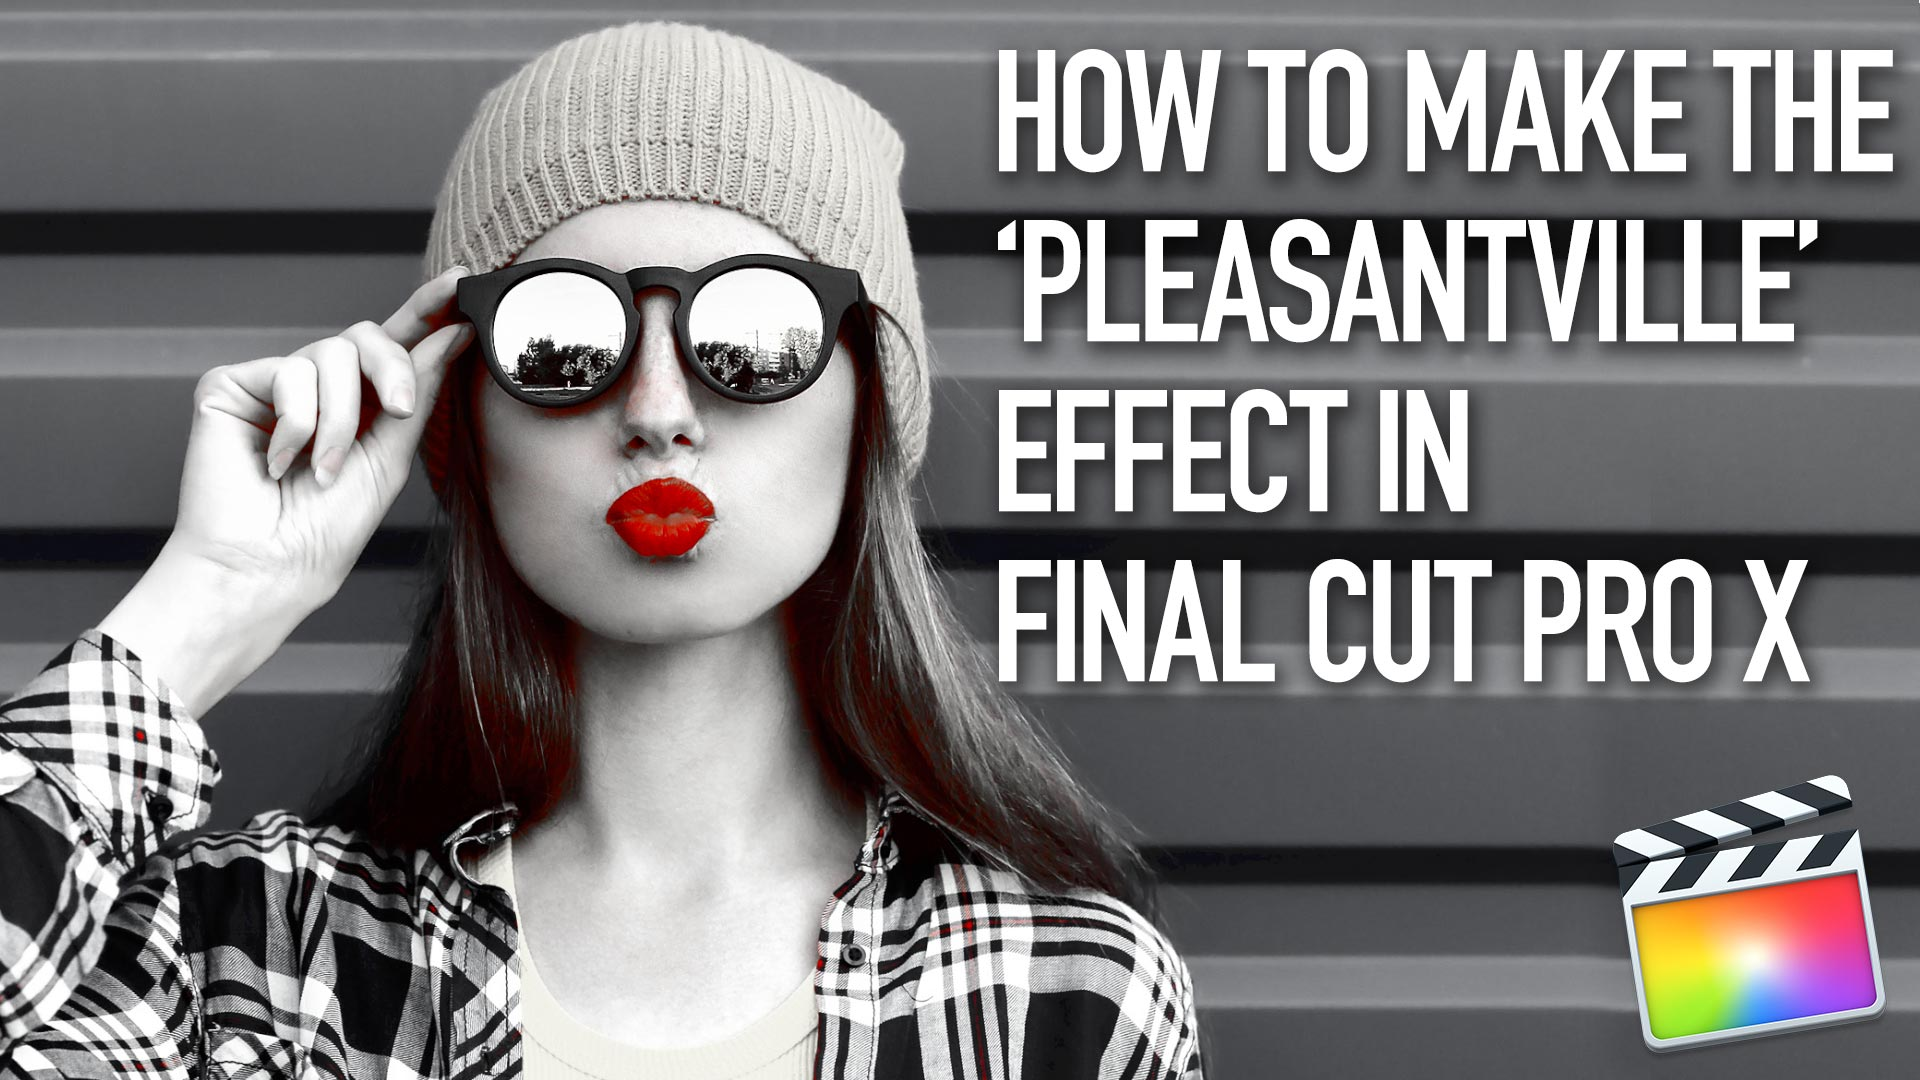 How to Make the 'Pleasantville' or 'Sin City' Effect in Final Cut Pro X 10.4